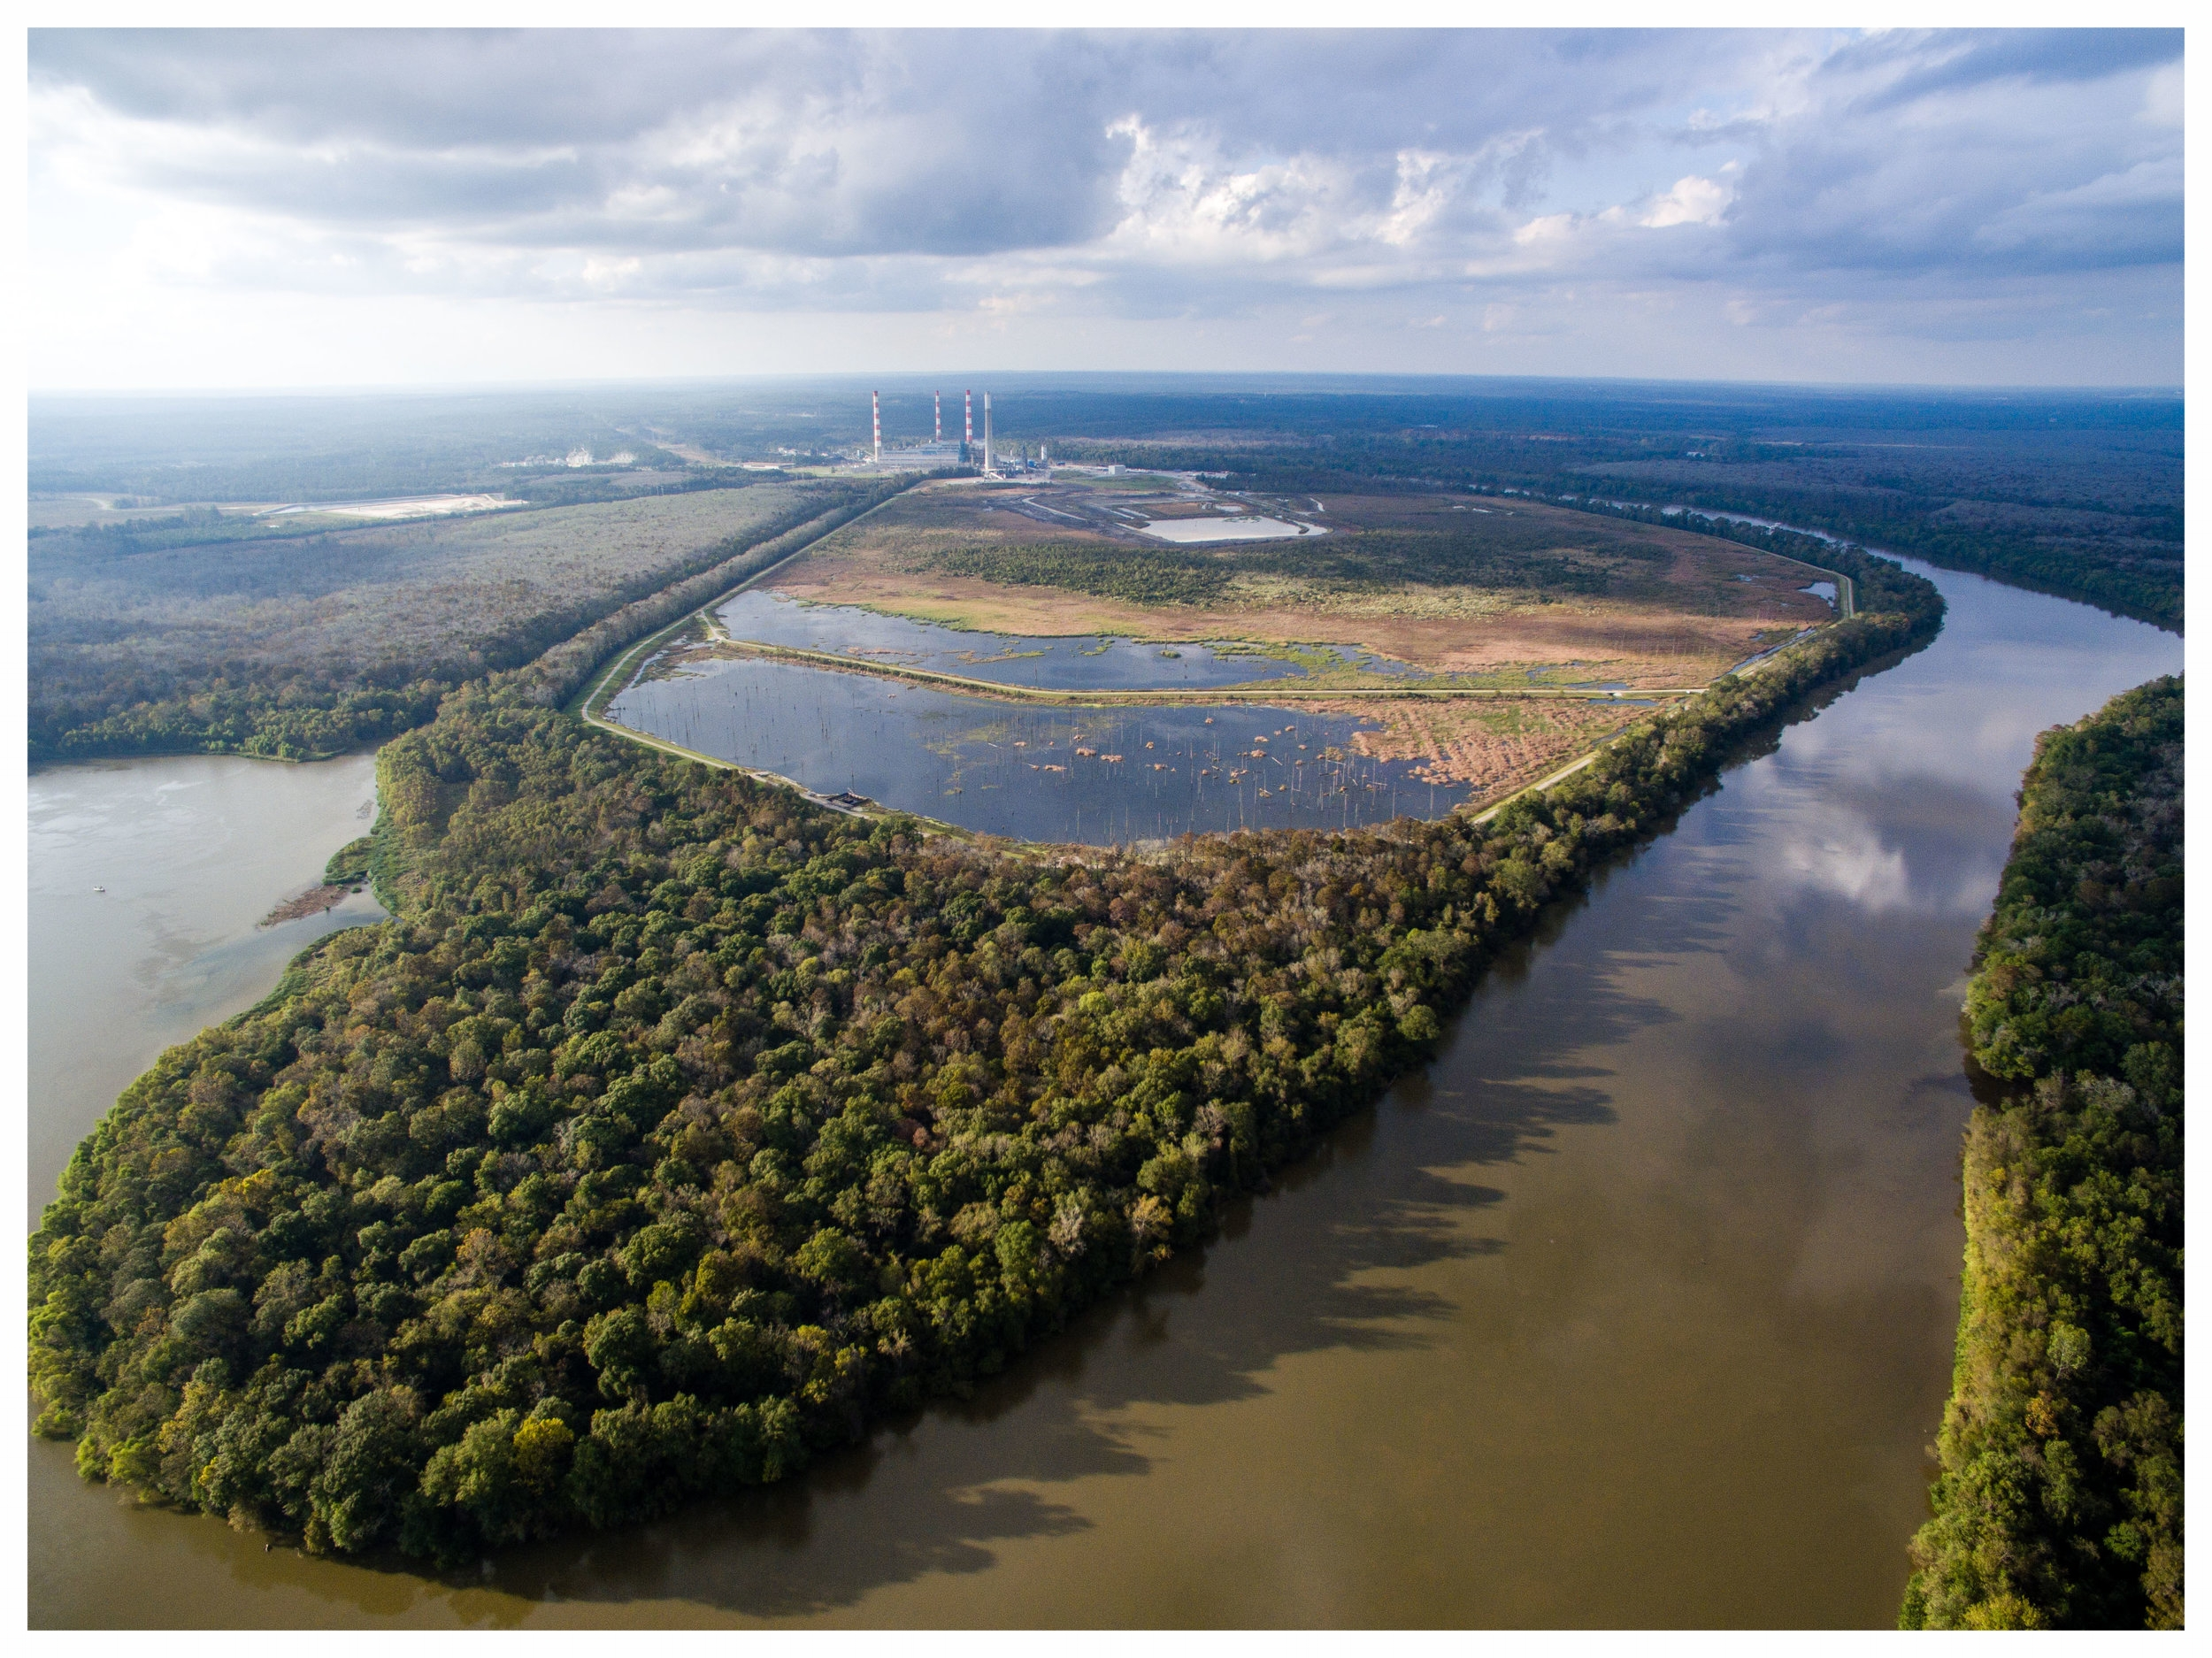 The  James M. Barry Electric Generating Plant , is located in Bucks, AL in North Mobile County. Coal ash from the facility is mixed with water and piped into a coal ash pond (pictured above). This pond is located immediately adjacent to the Mobile River and Mobile-Tensaw Delta and   contains more than 21 million tons of coal ash.